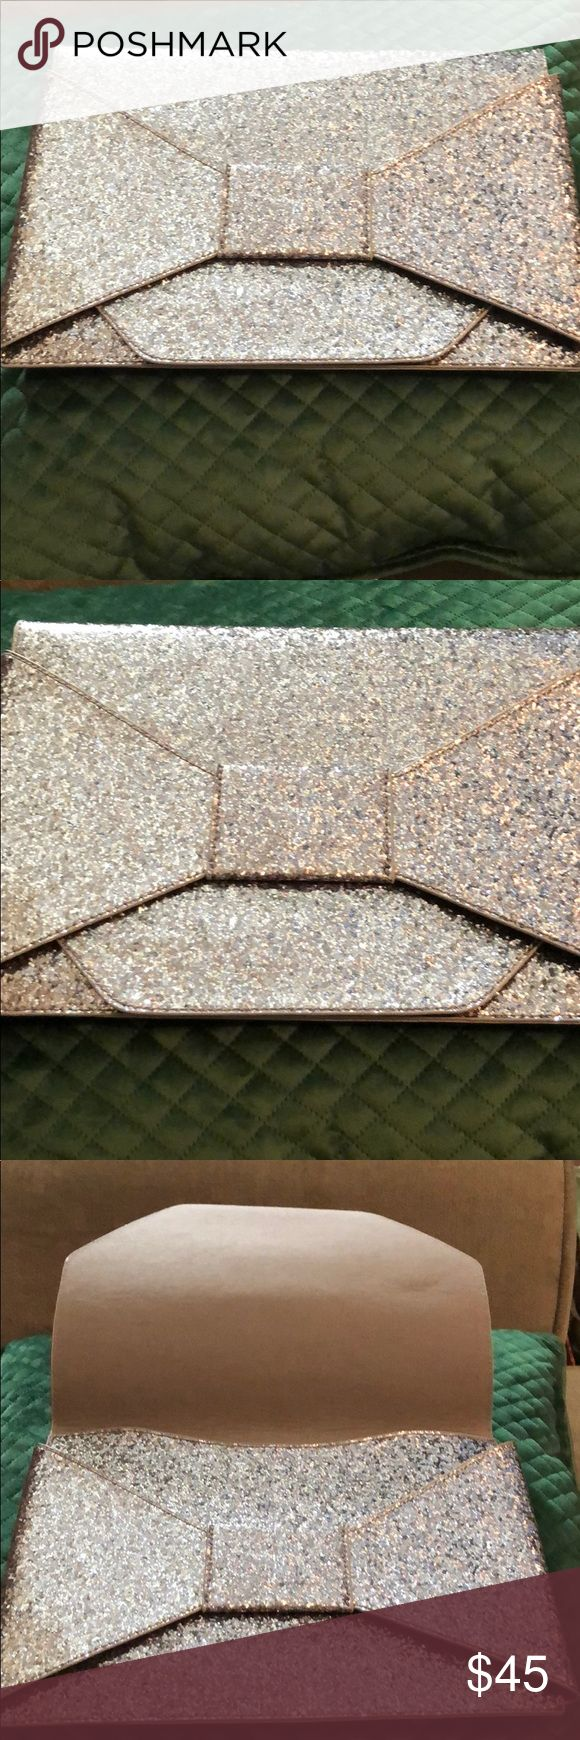 NWT! Banana Republic Silver Glitter Bag NWT! Banana Republic Silver Glitter Bag   Dimensions attached to pictures. Banana Republic Bags Clutches & Wristlets